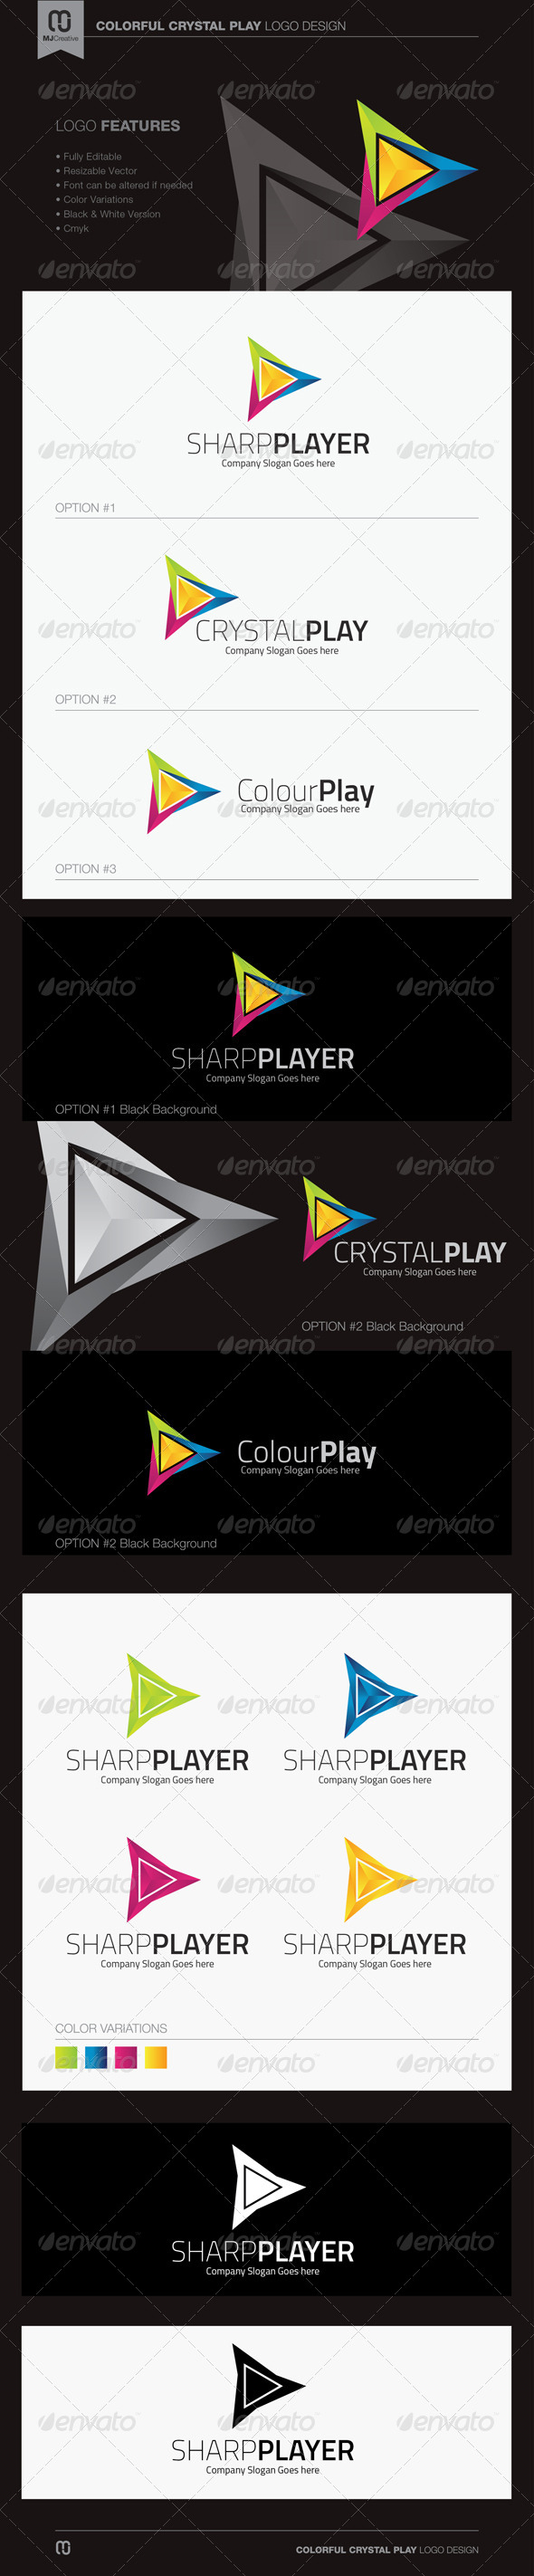 GraphicRiver Colorful Crystal Play Logo 6753428